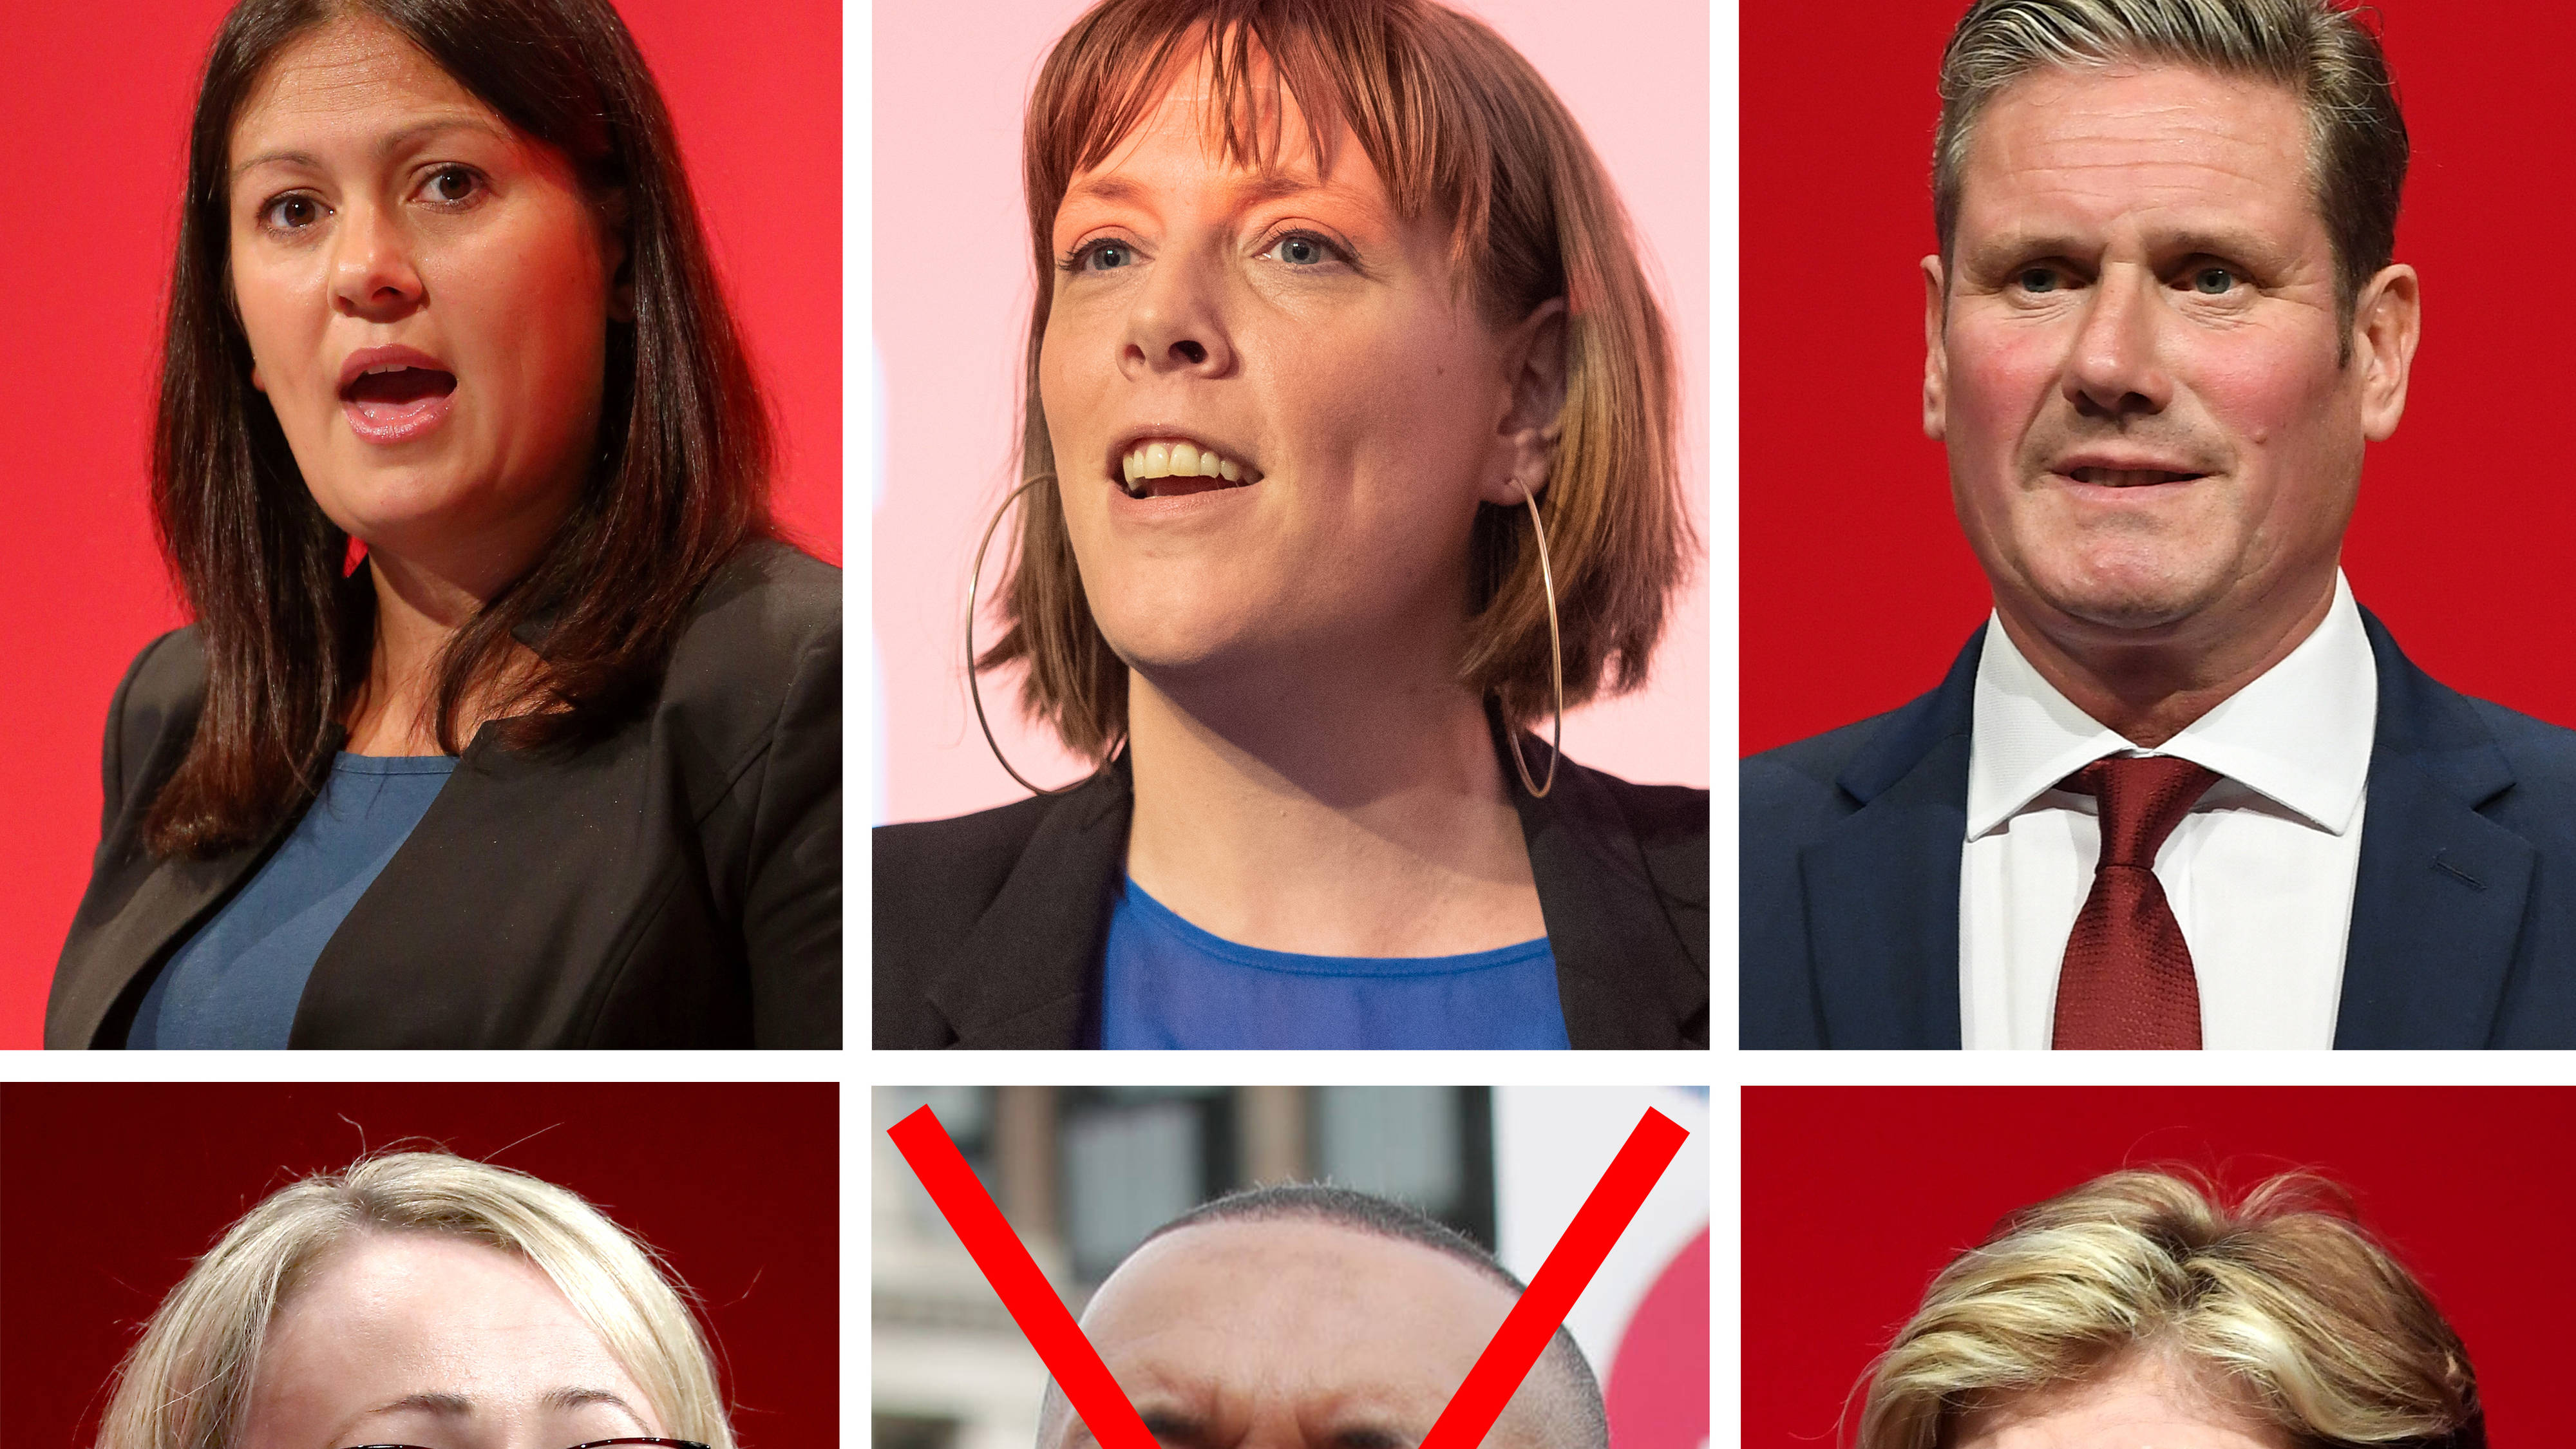 Five candidates will battle to succeed Jeremy Corbyn as Labour leader